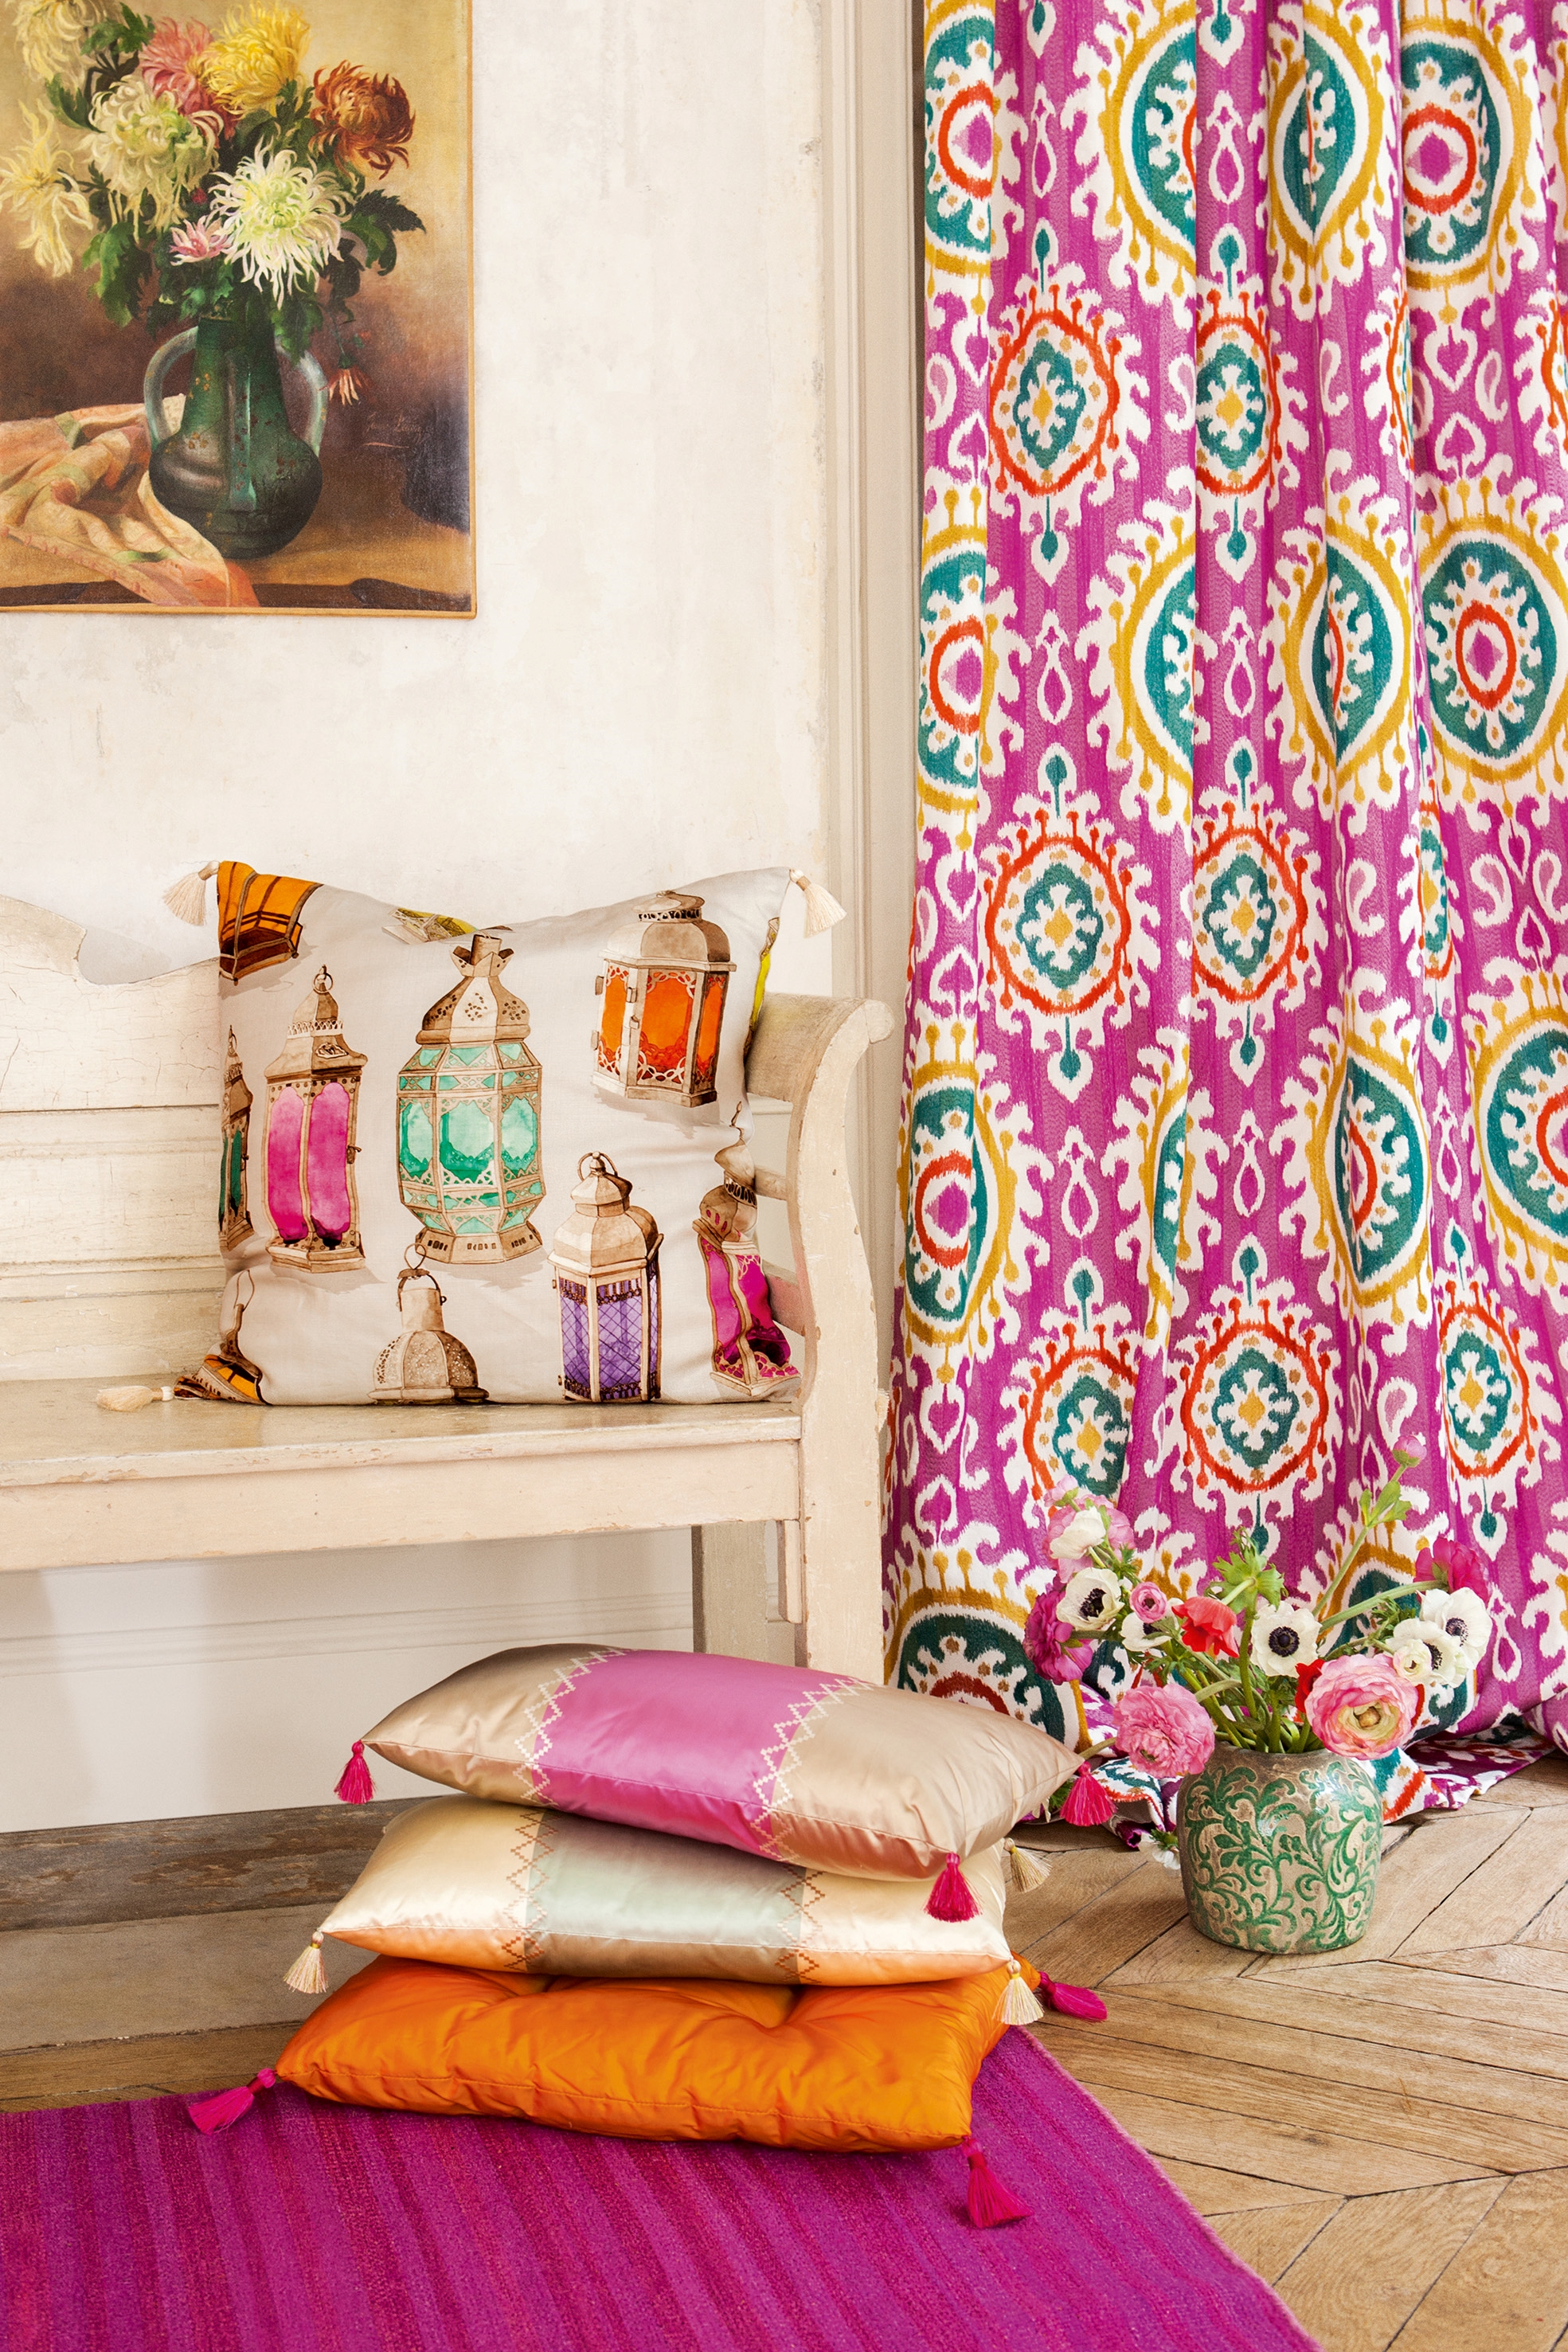 Attrayant Linge De Lit Manuel Canovas #5: New Collection